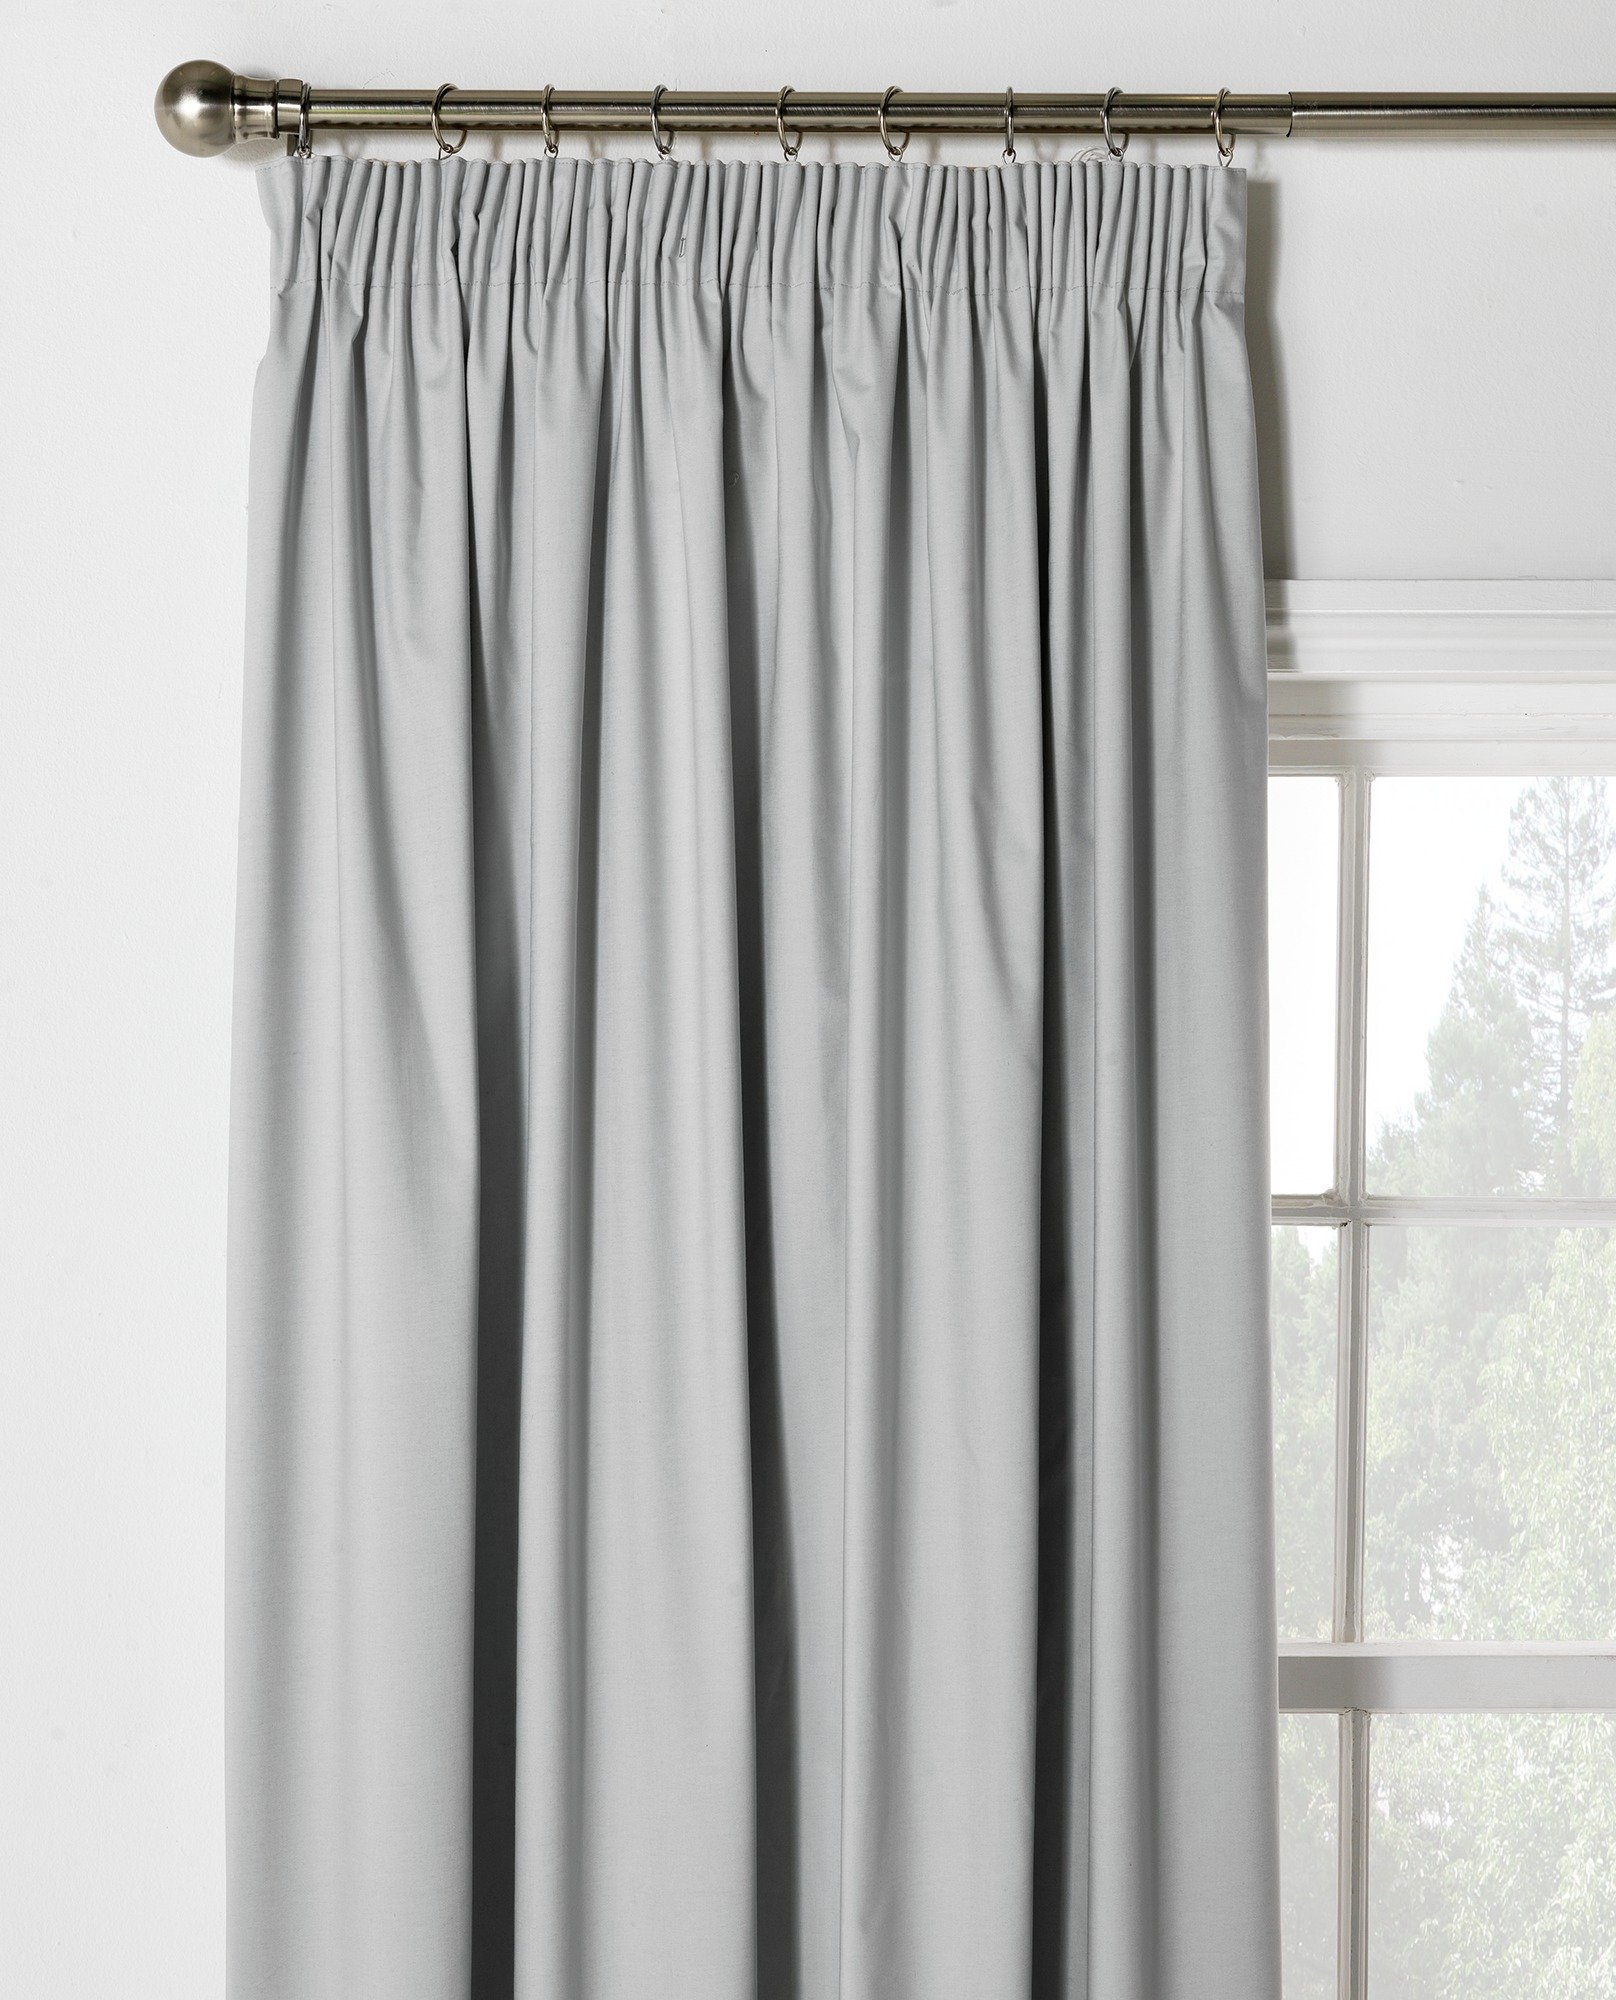 Thermal curtains grey - Home Blackout Thermal Curtains 117x137cm Dove Grey